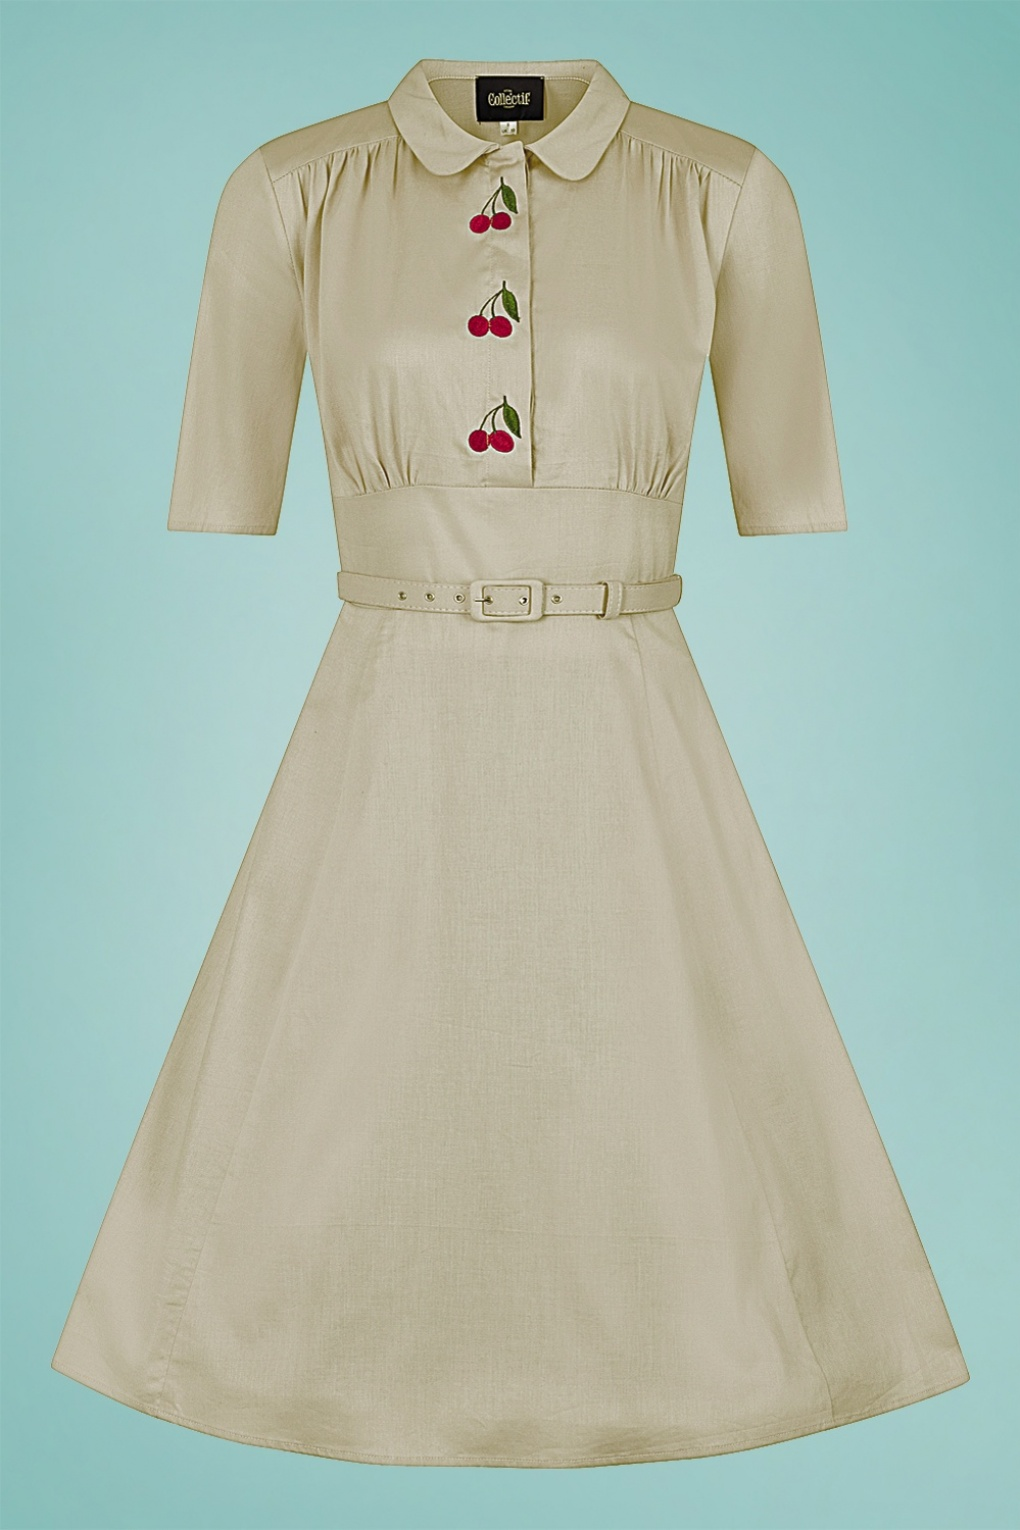 Vintage Shirtwaist Dress History 40s Doriane Cherry Swing Dress in Beige £56.39 AT vintagedancer.com